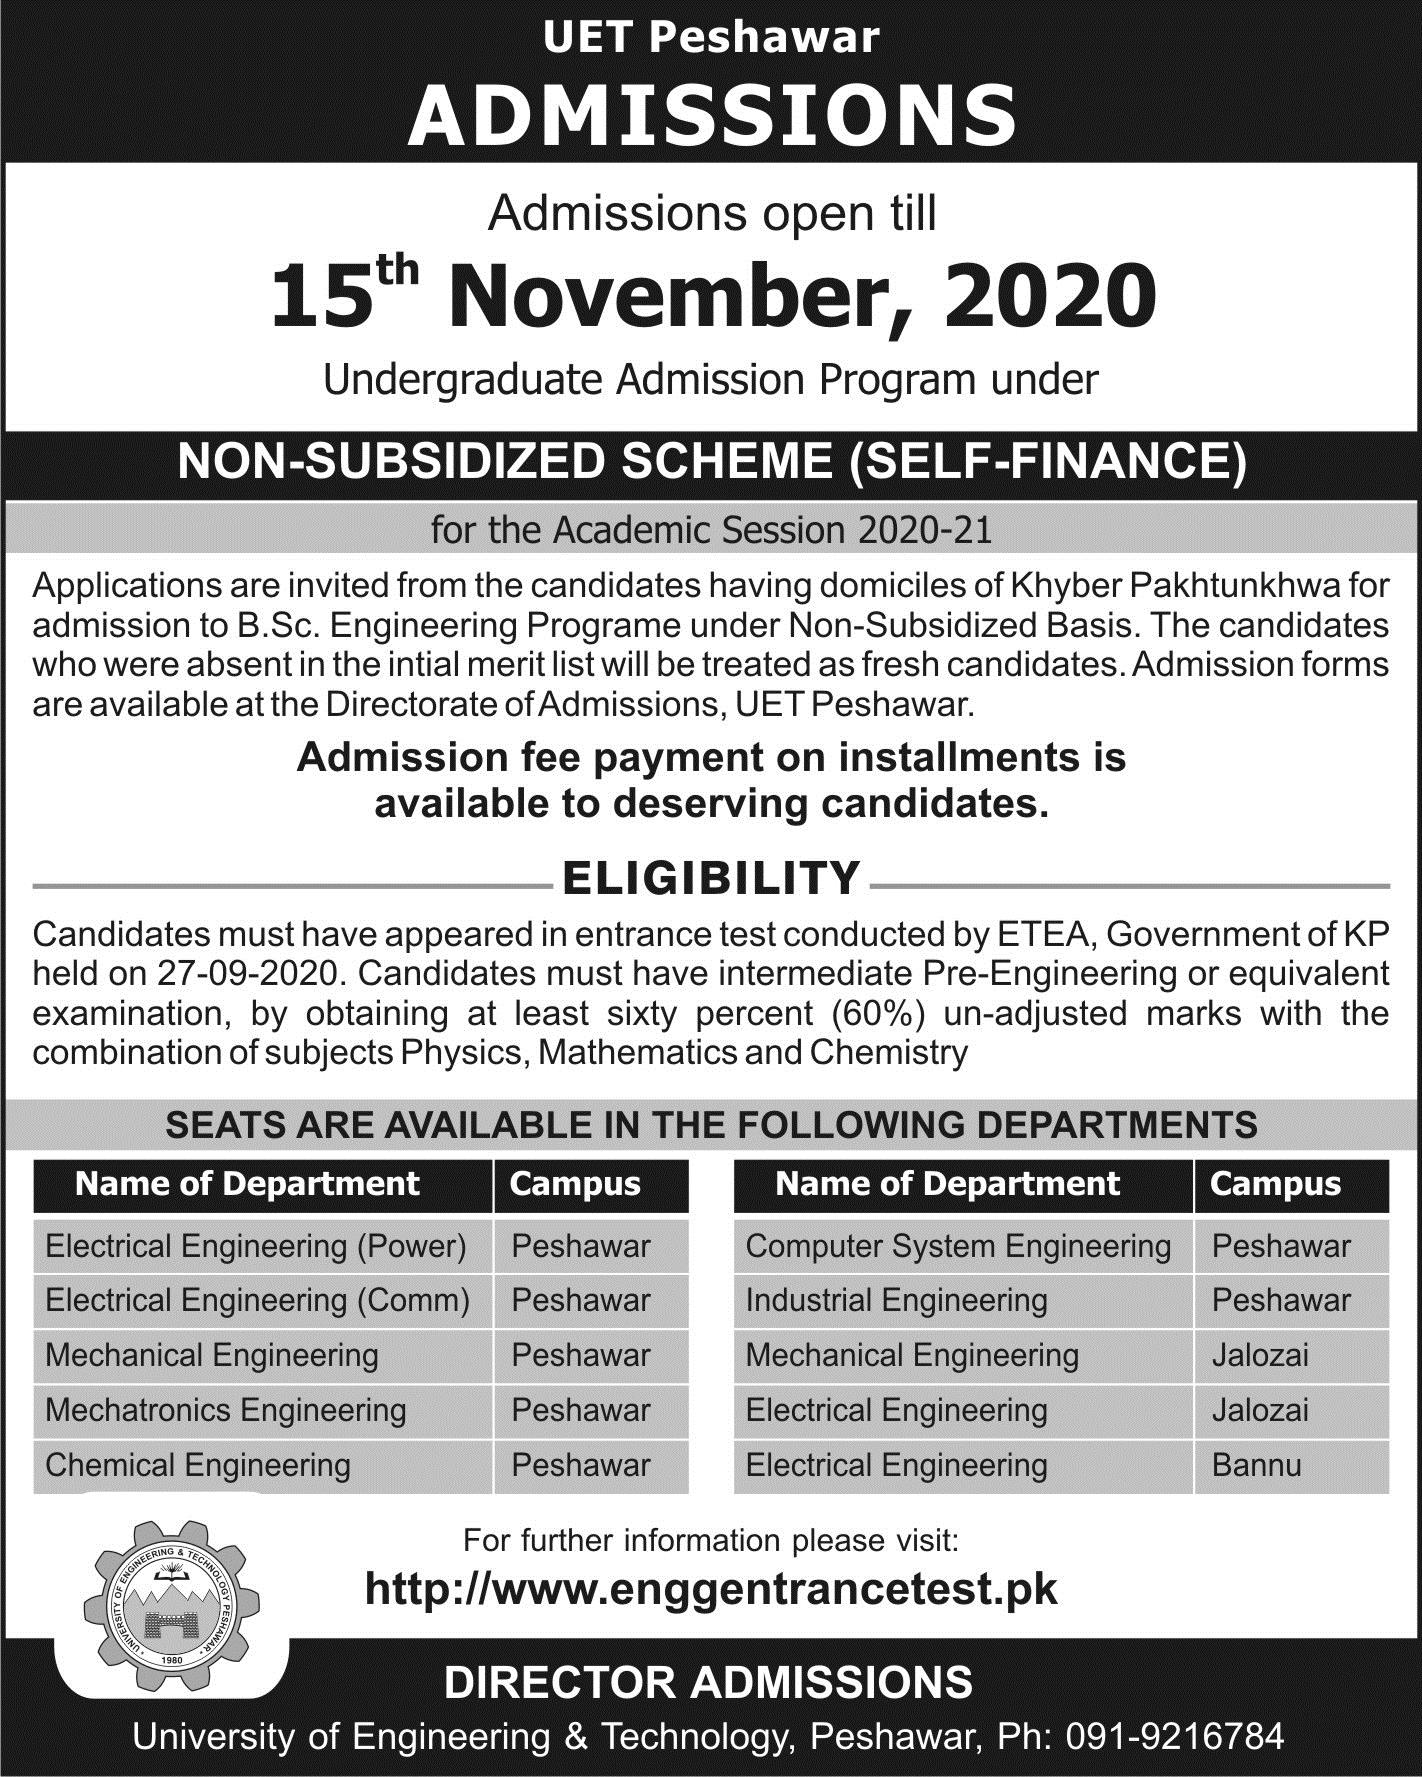 UET Peshawar extends the admission deadline for B.Sc Engineering